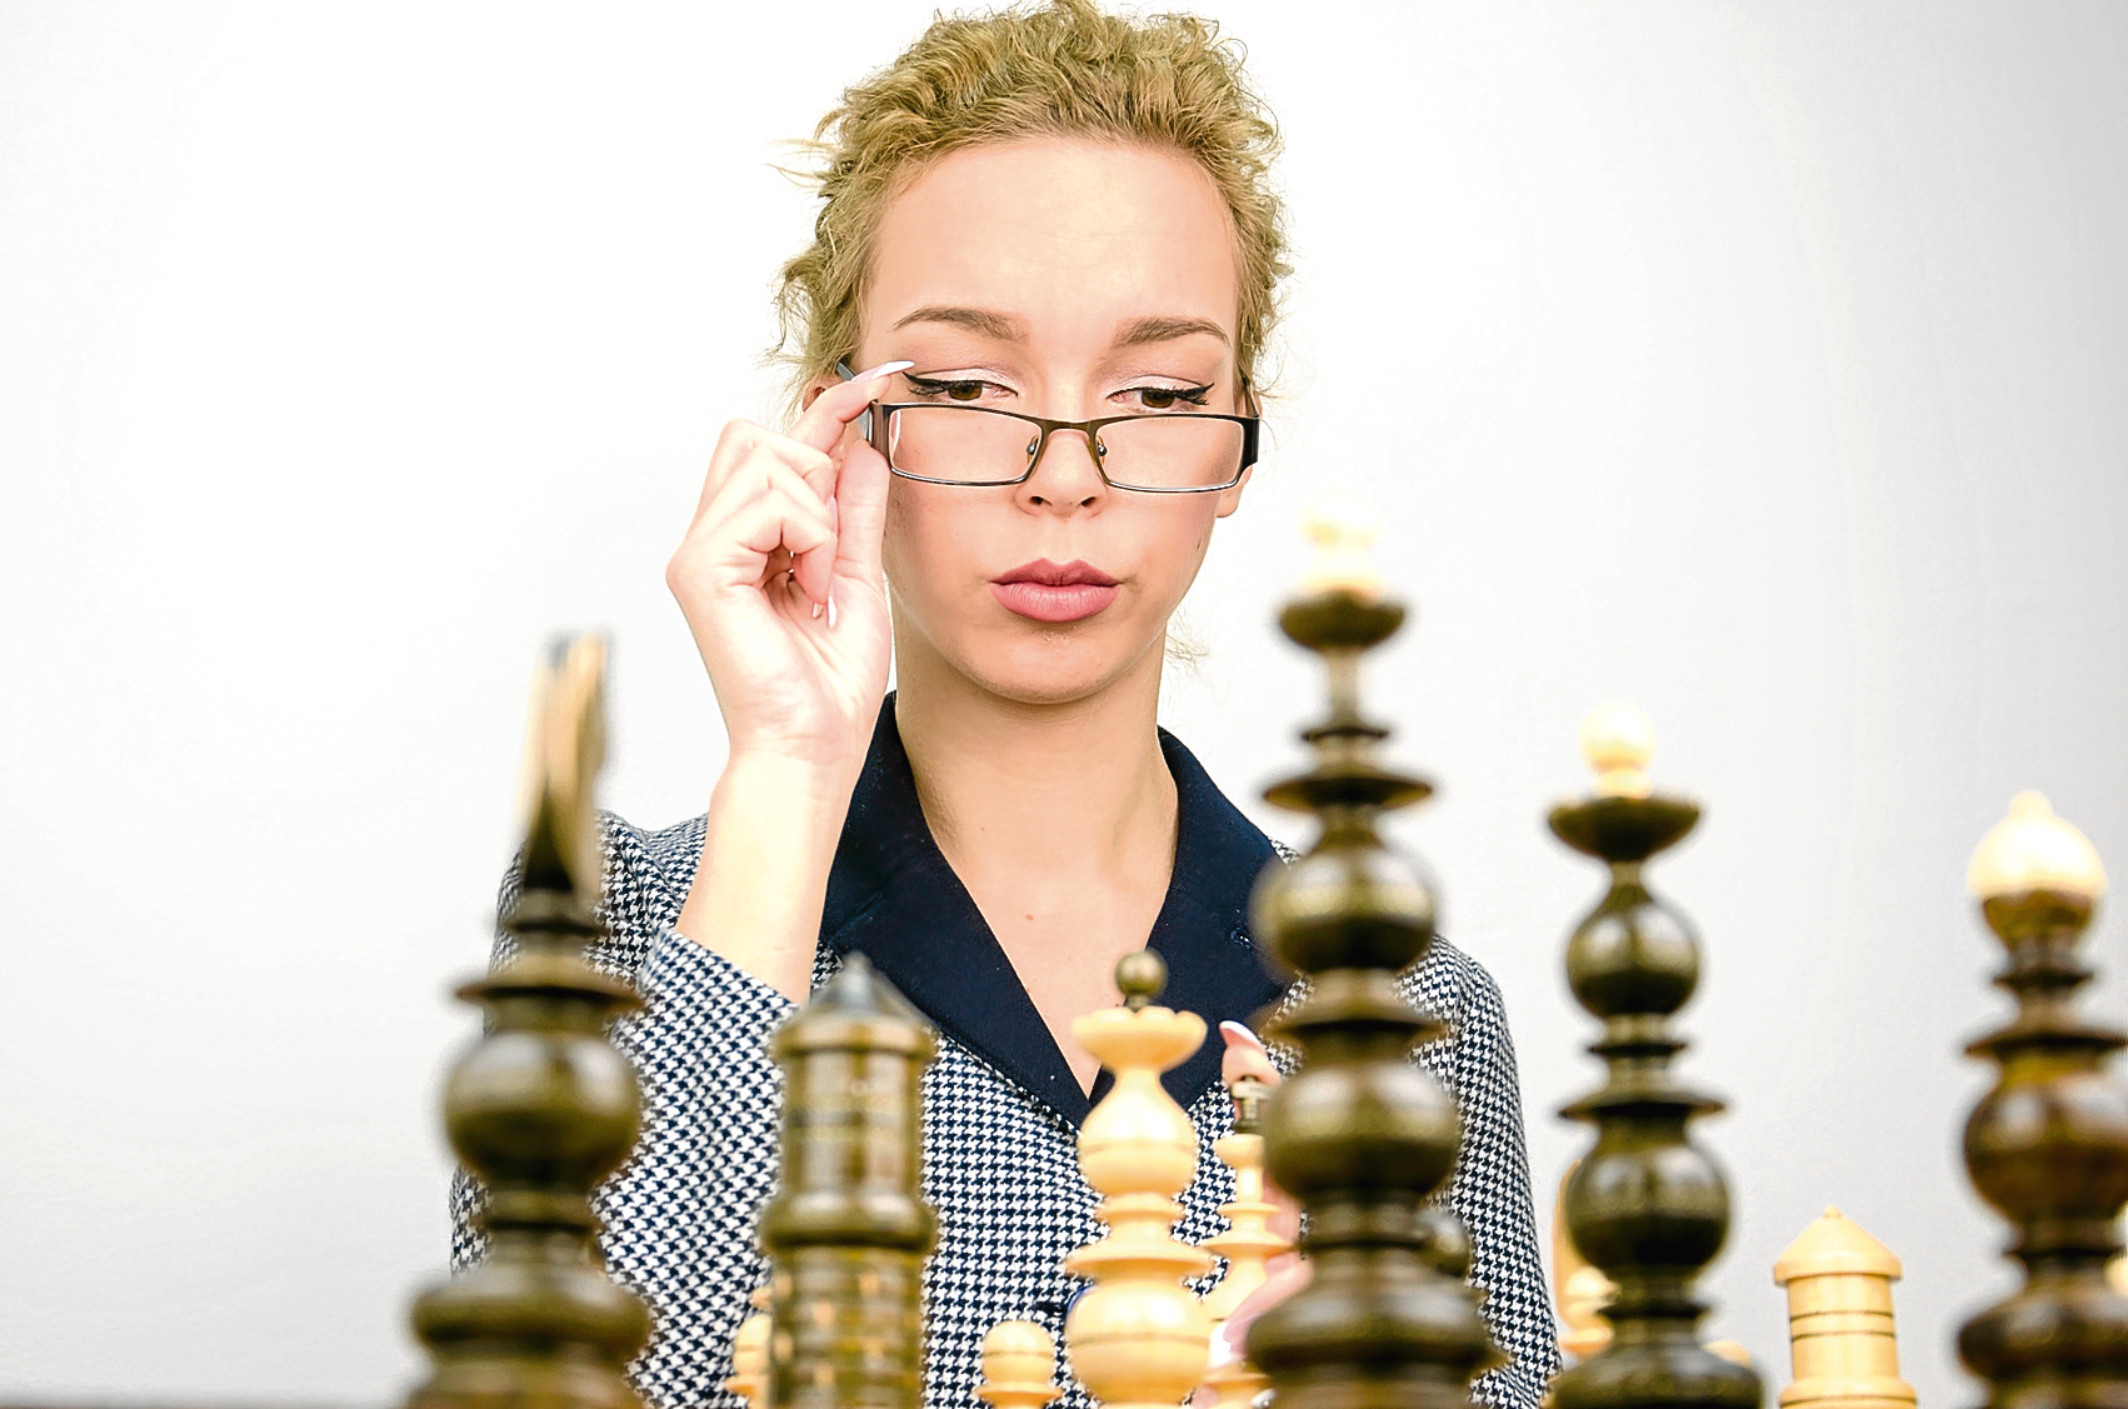 Watch out when you're playing chess (Getty Images)